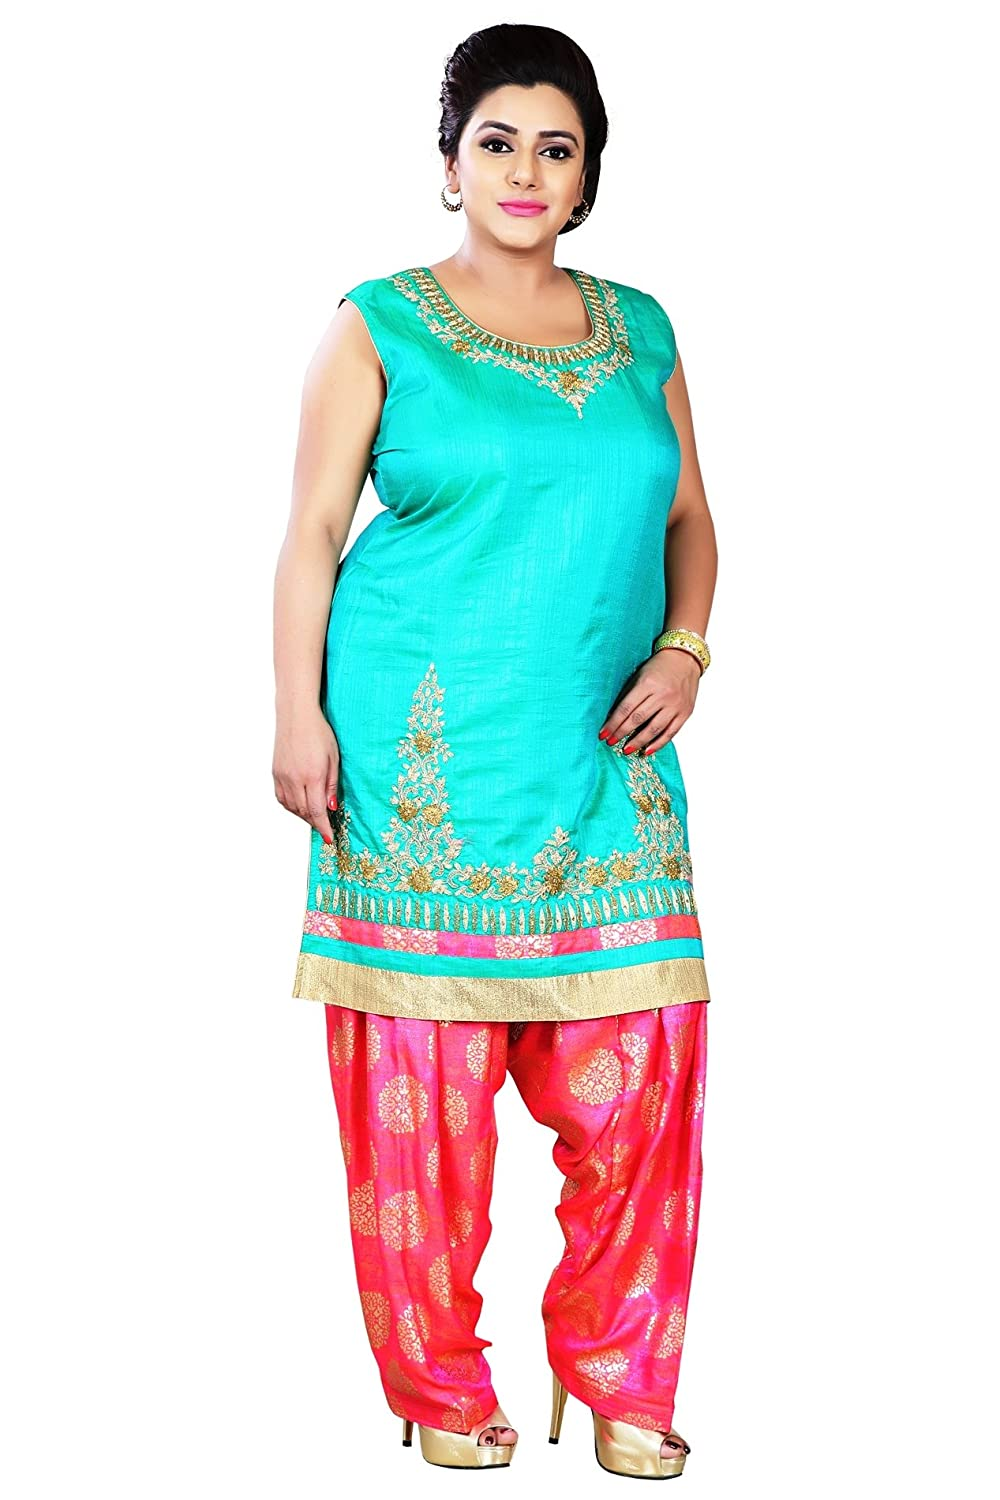 PLUS SIZE INDIAN READYMADE SUITS FOR WOMEN LADIES PATIALA SALWAR ...